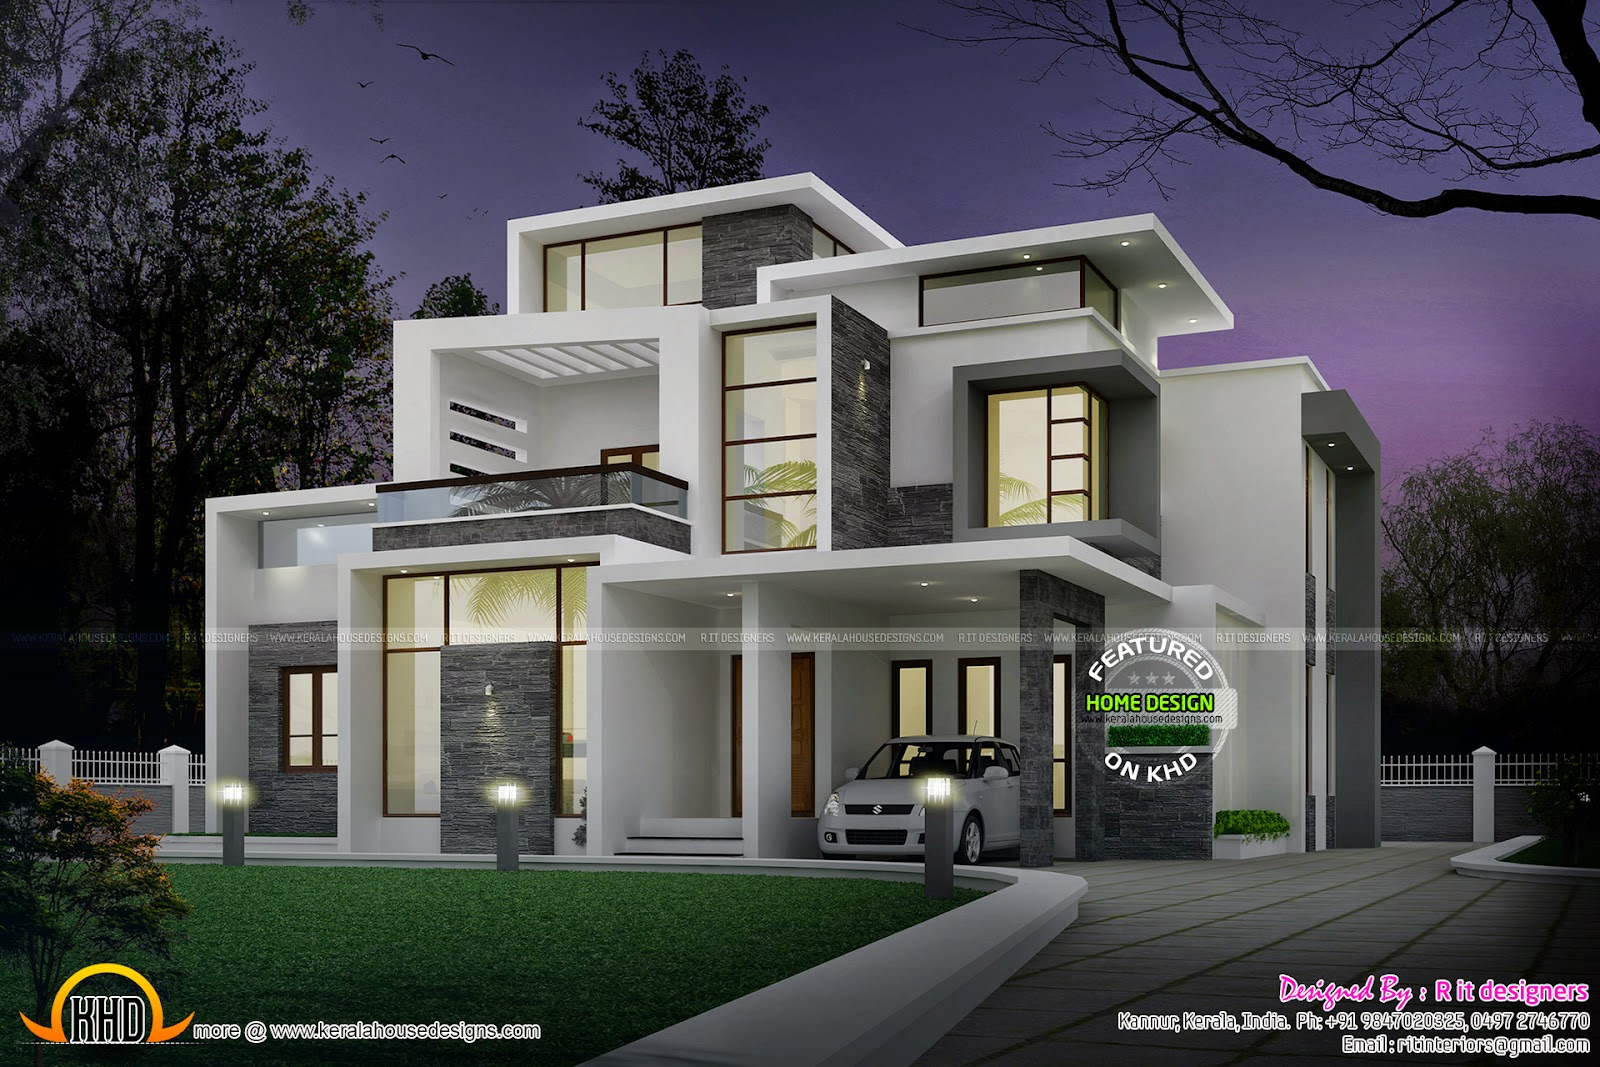 Grand contemporary home design kerala home design and for 5000 sq ft modular homes